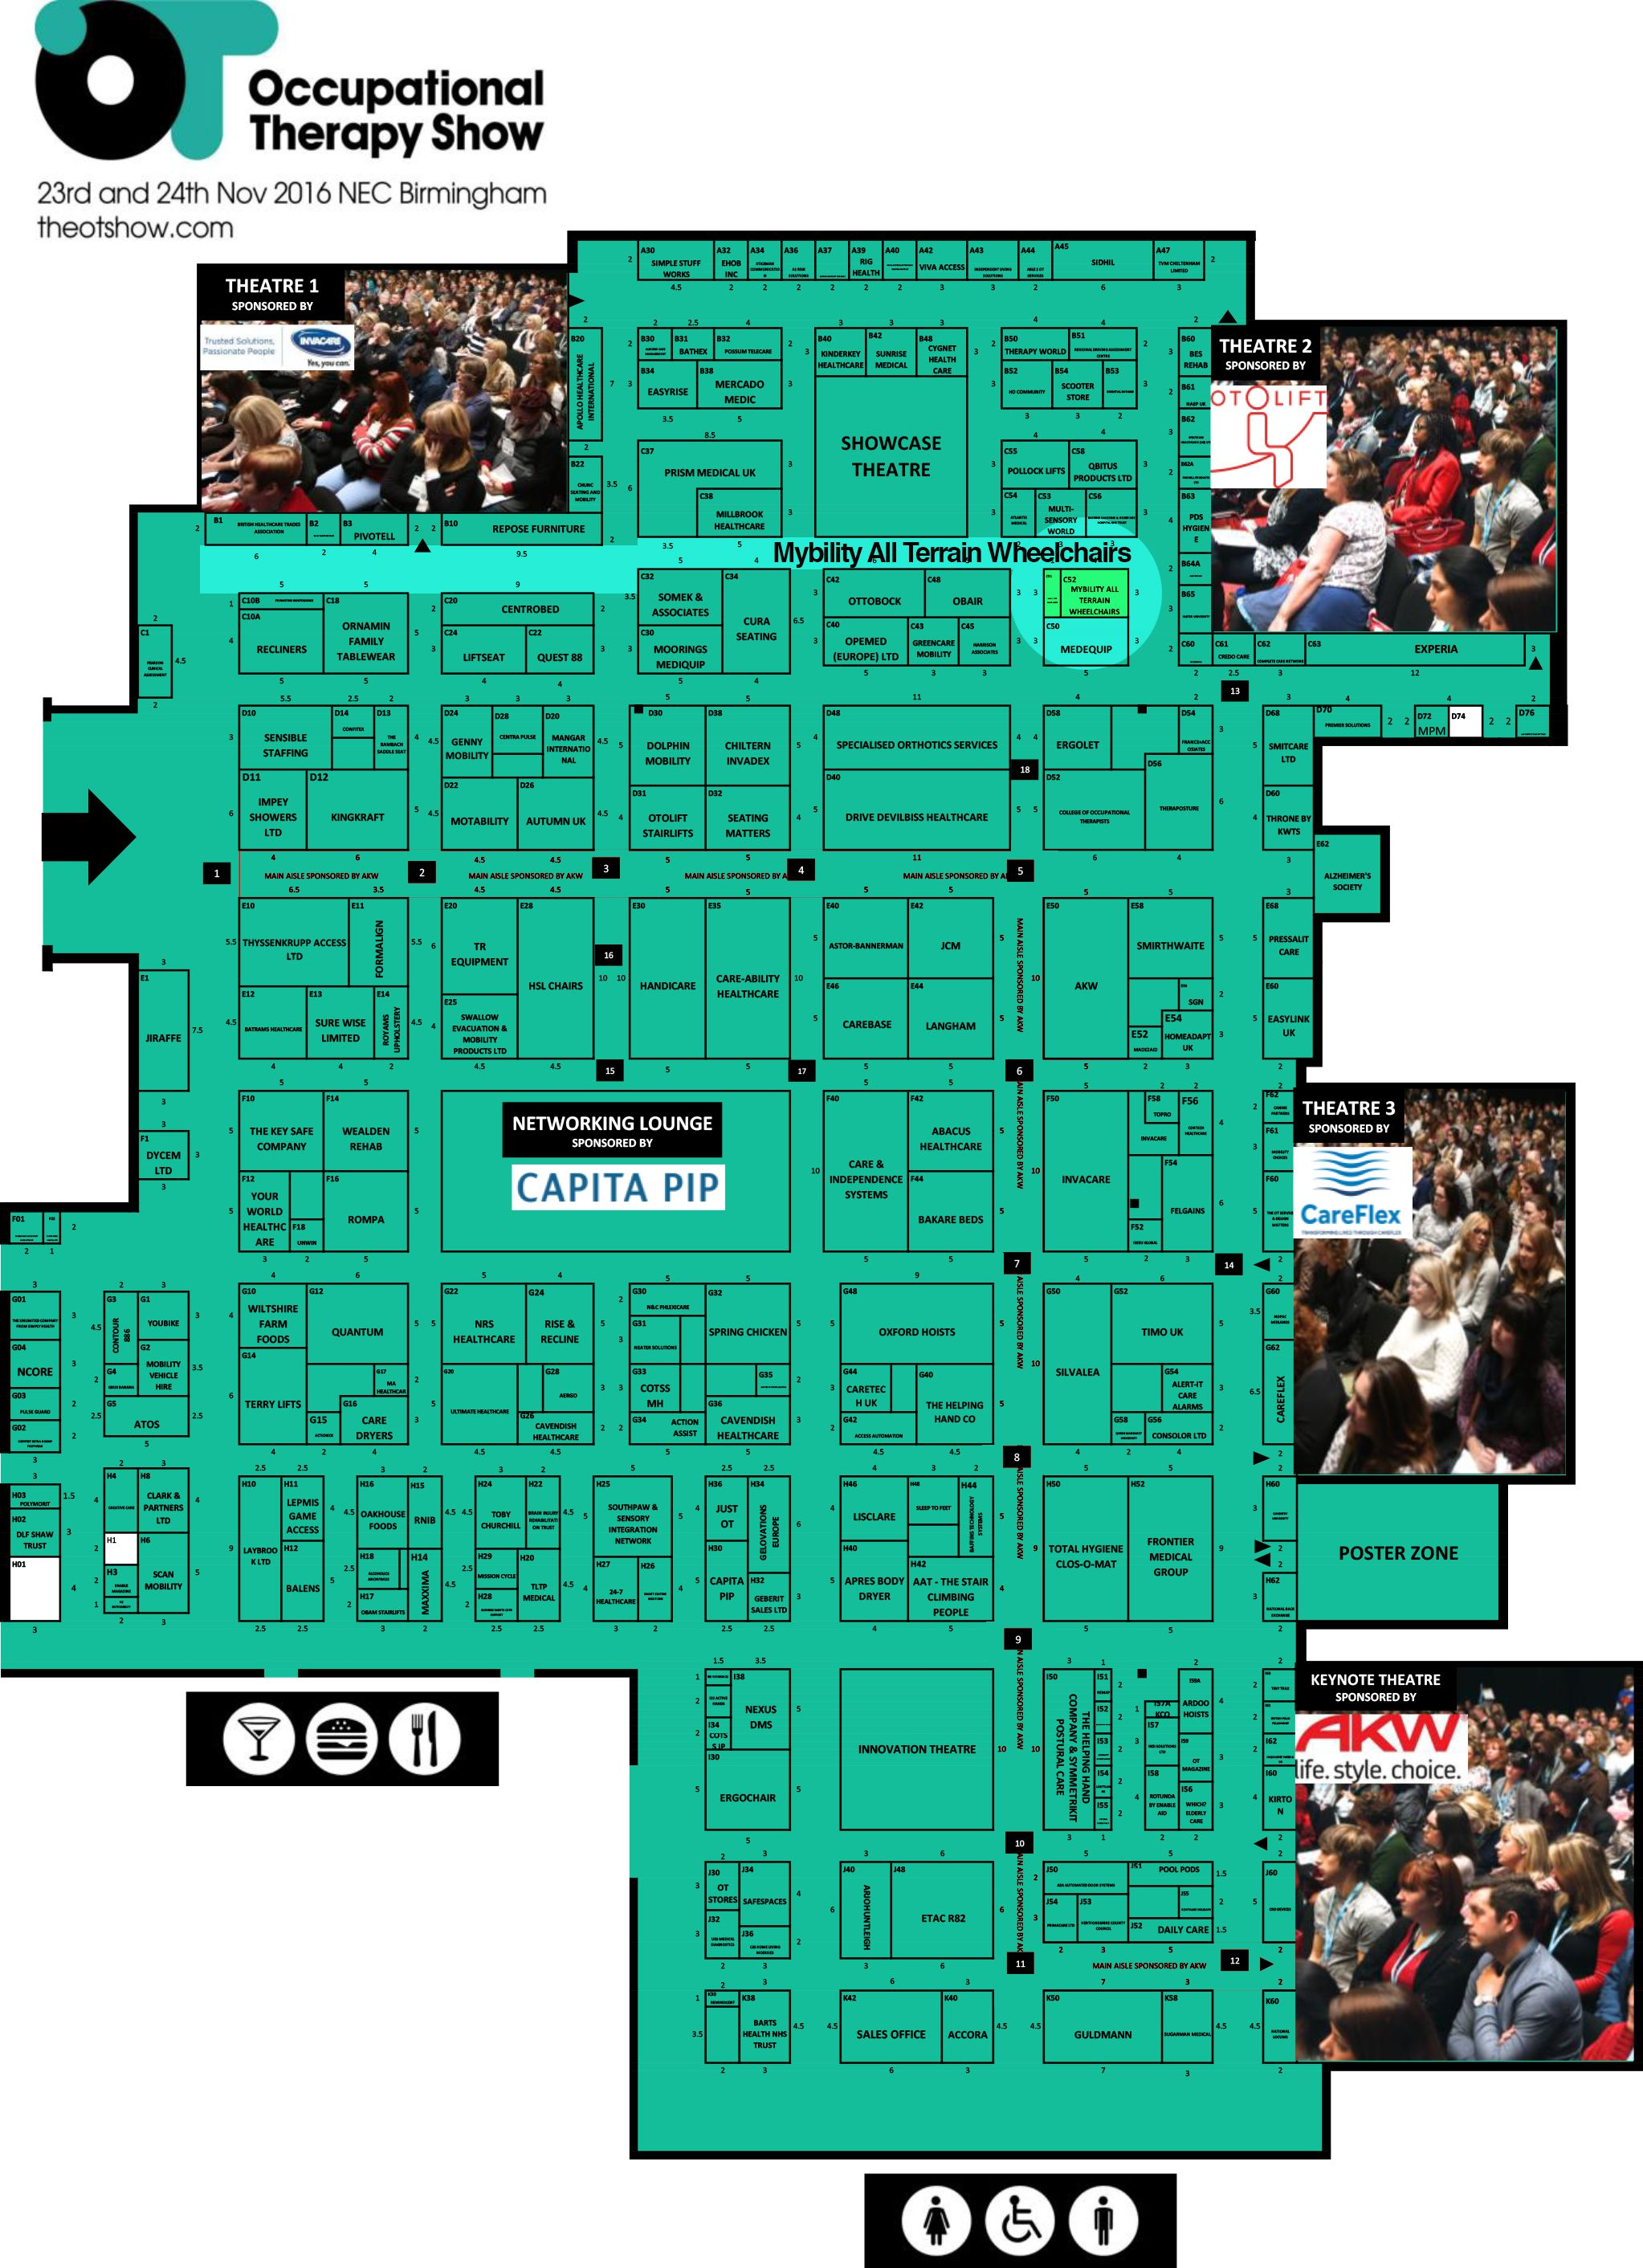 the-occupational-therapy-show-2016-floorplan